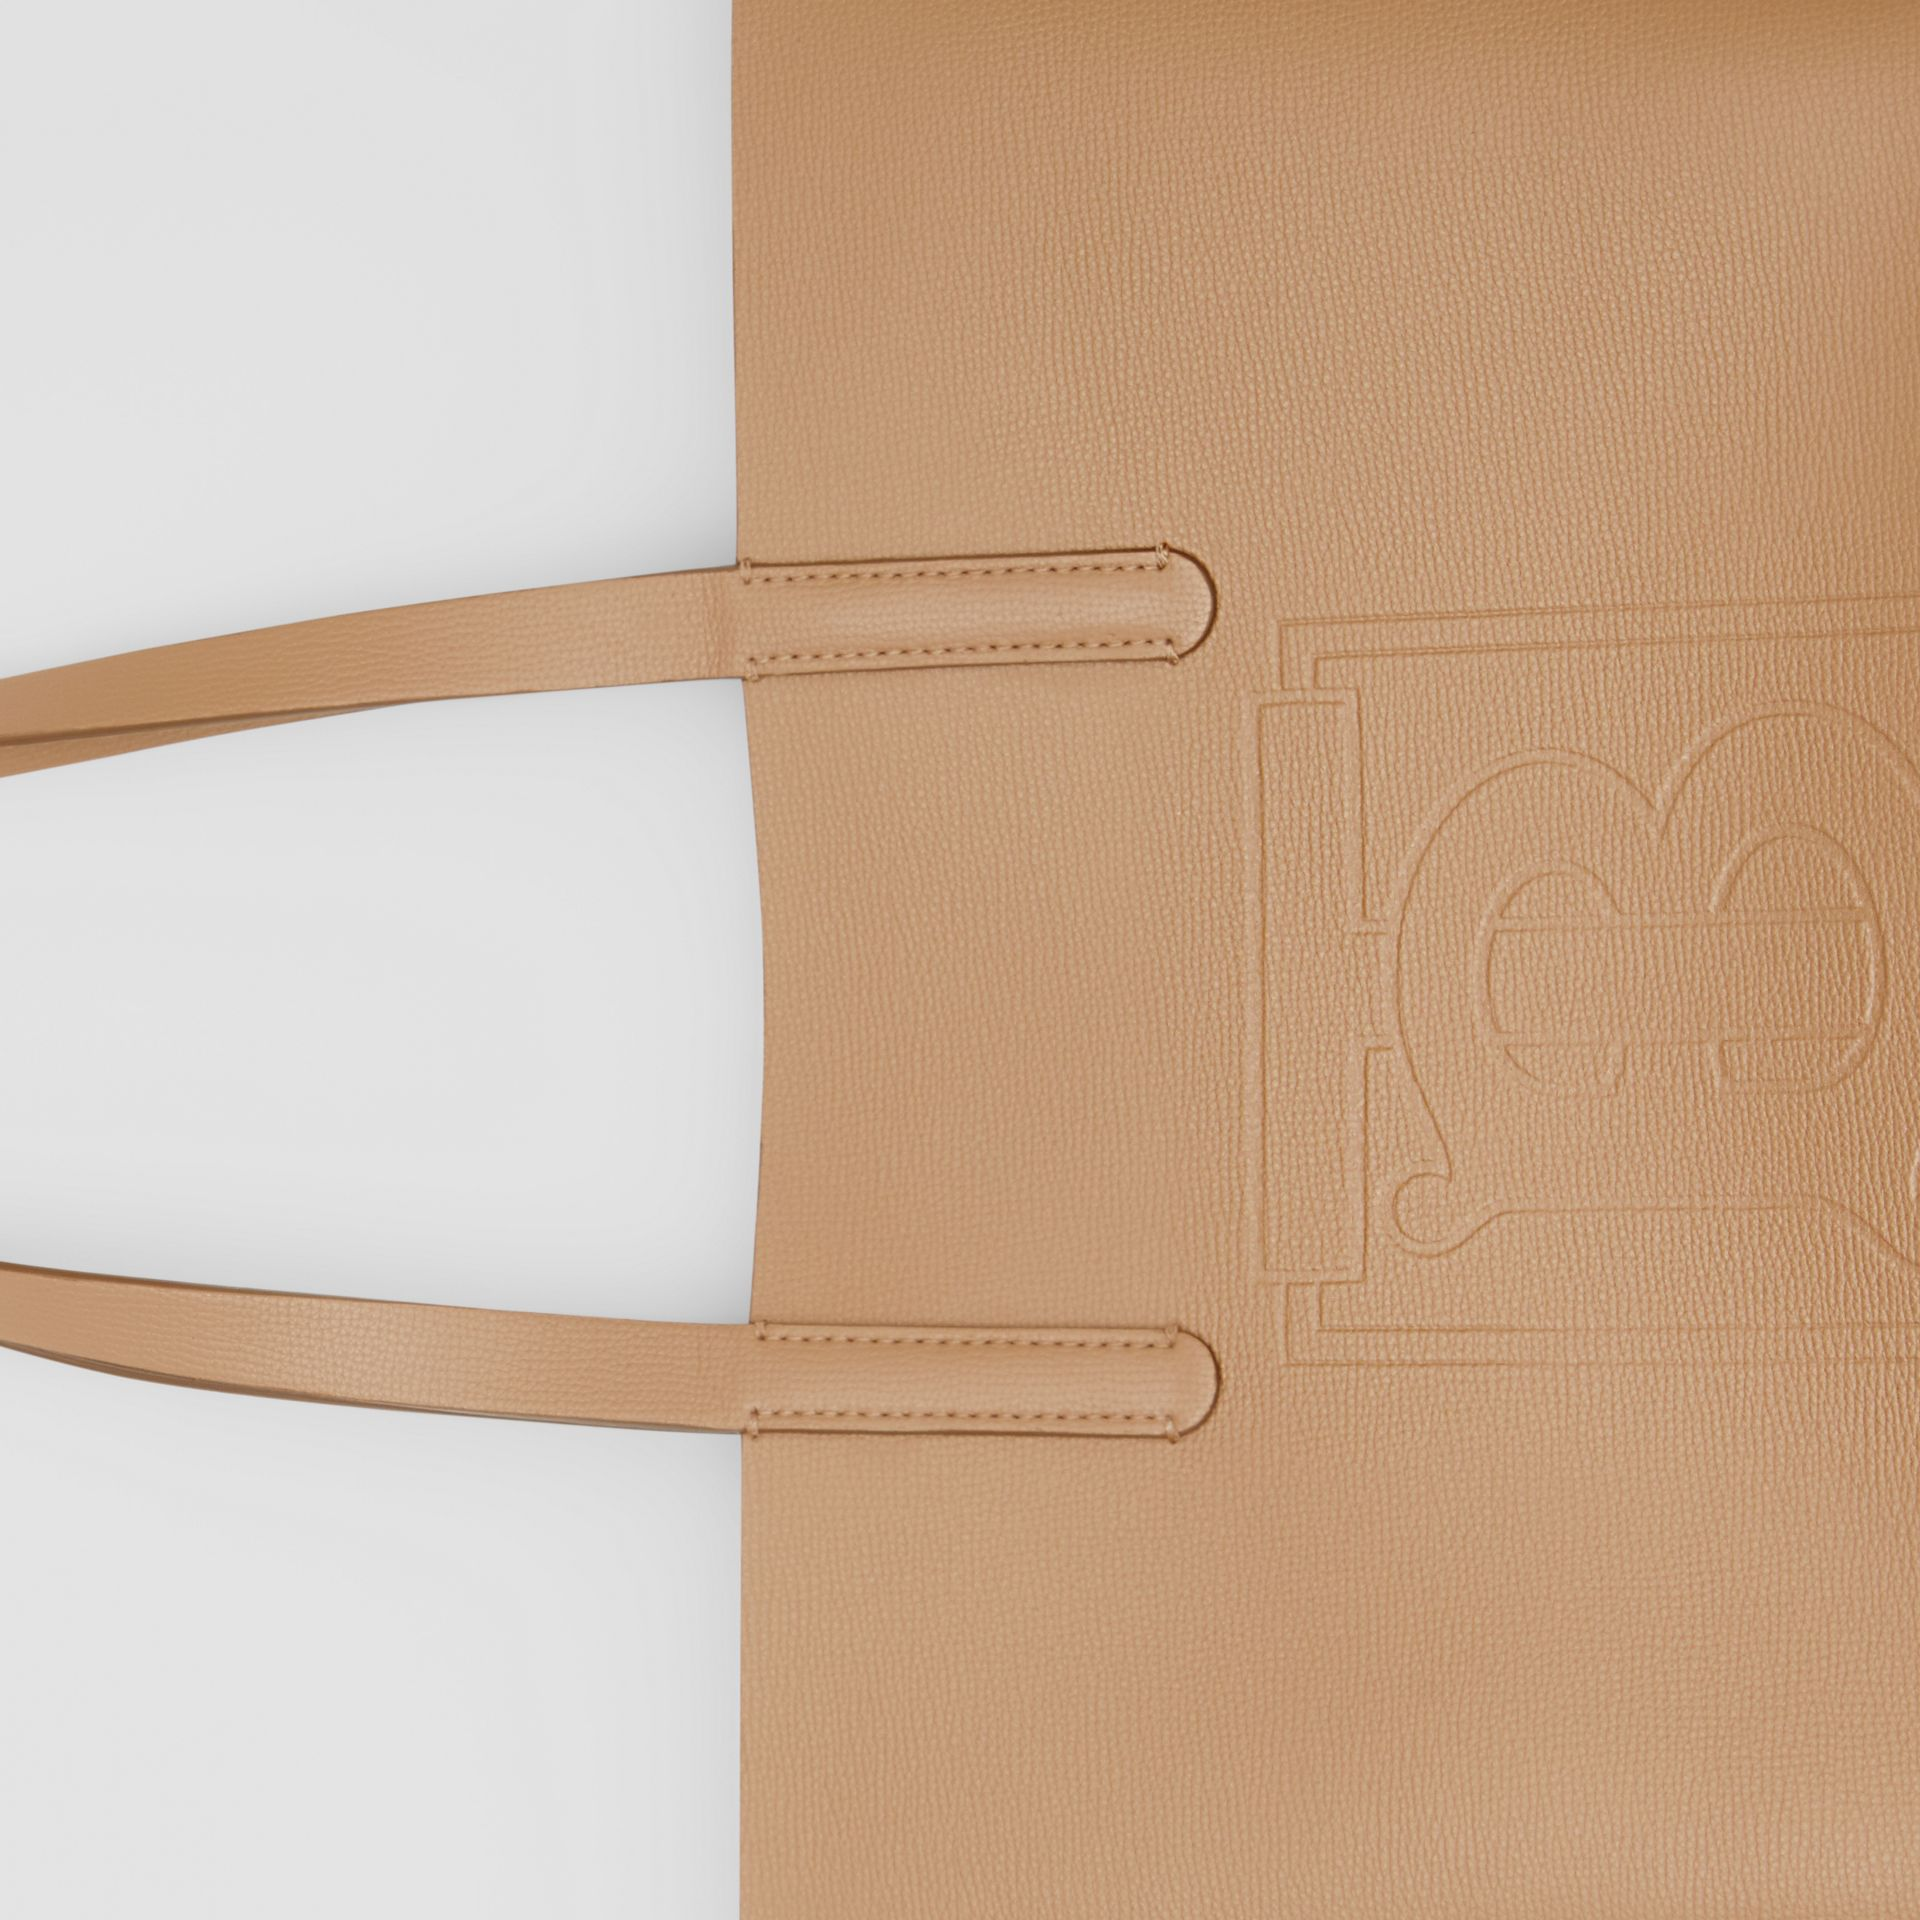 Embossed Monogram Motif Leather Tote in Camel - Women | Burberry - gallery image 1